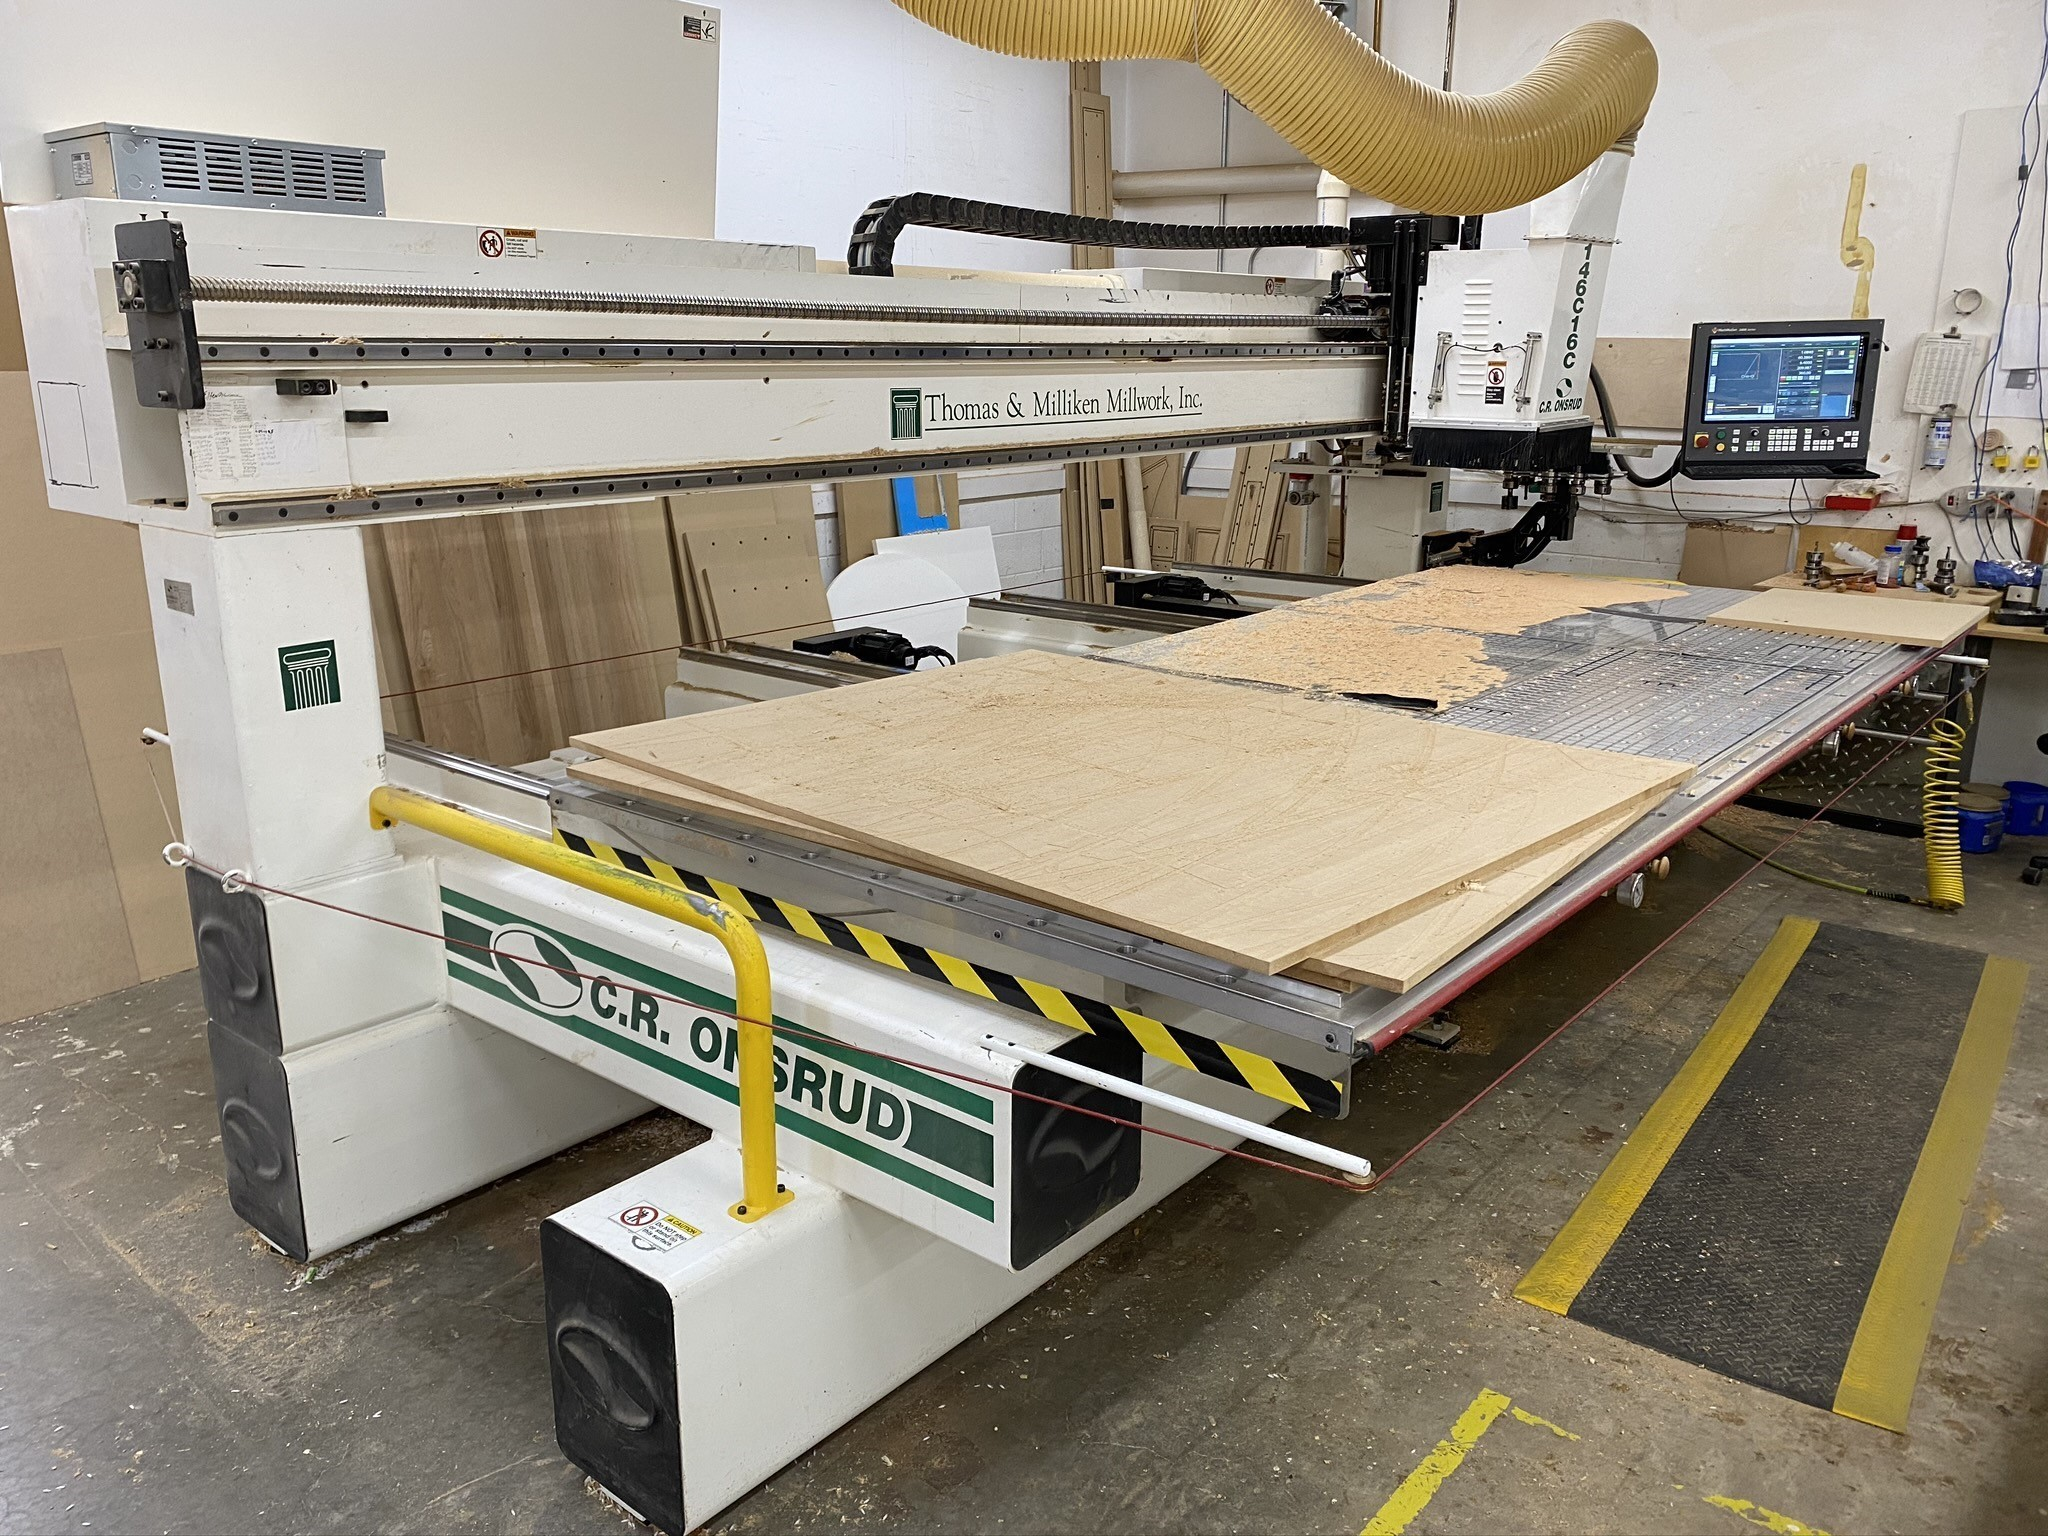 C.R. Onsrud 146C16C CNC Router MachMotion Upgrade Finished